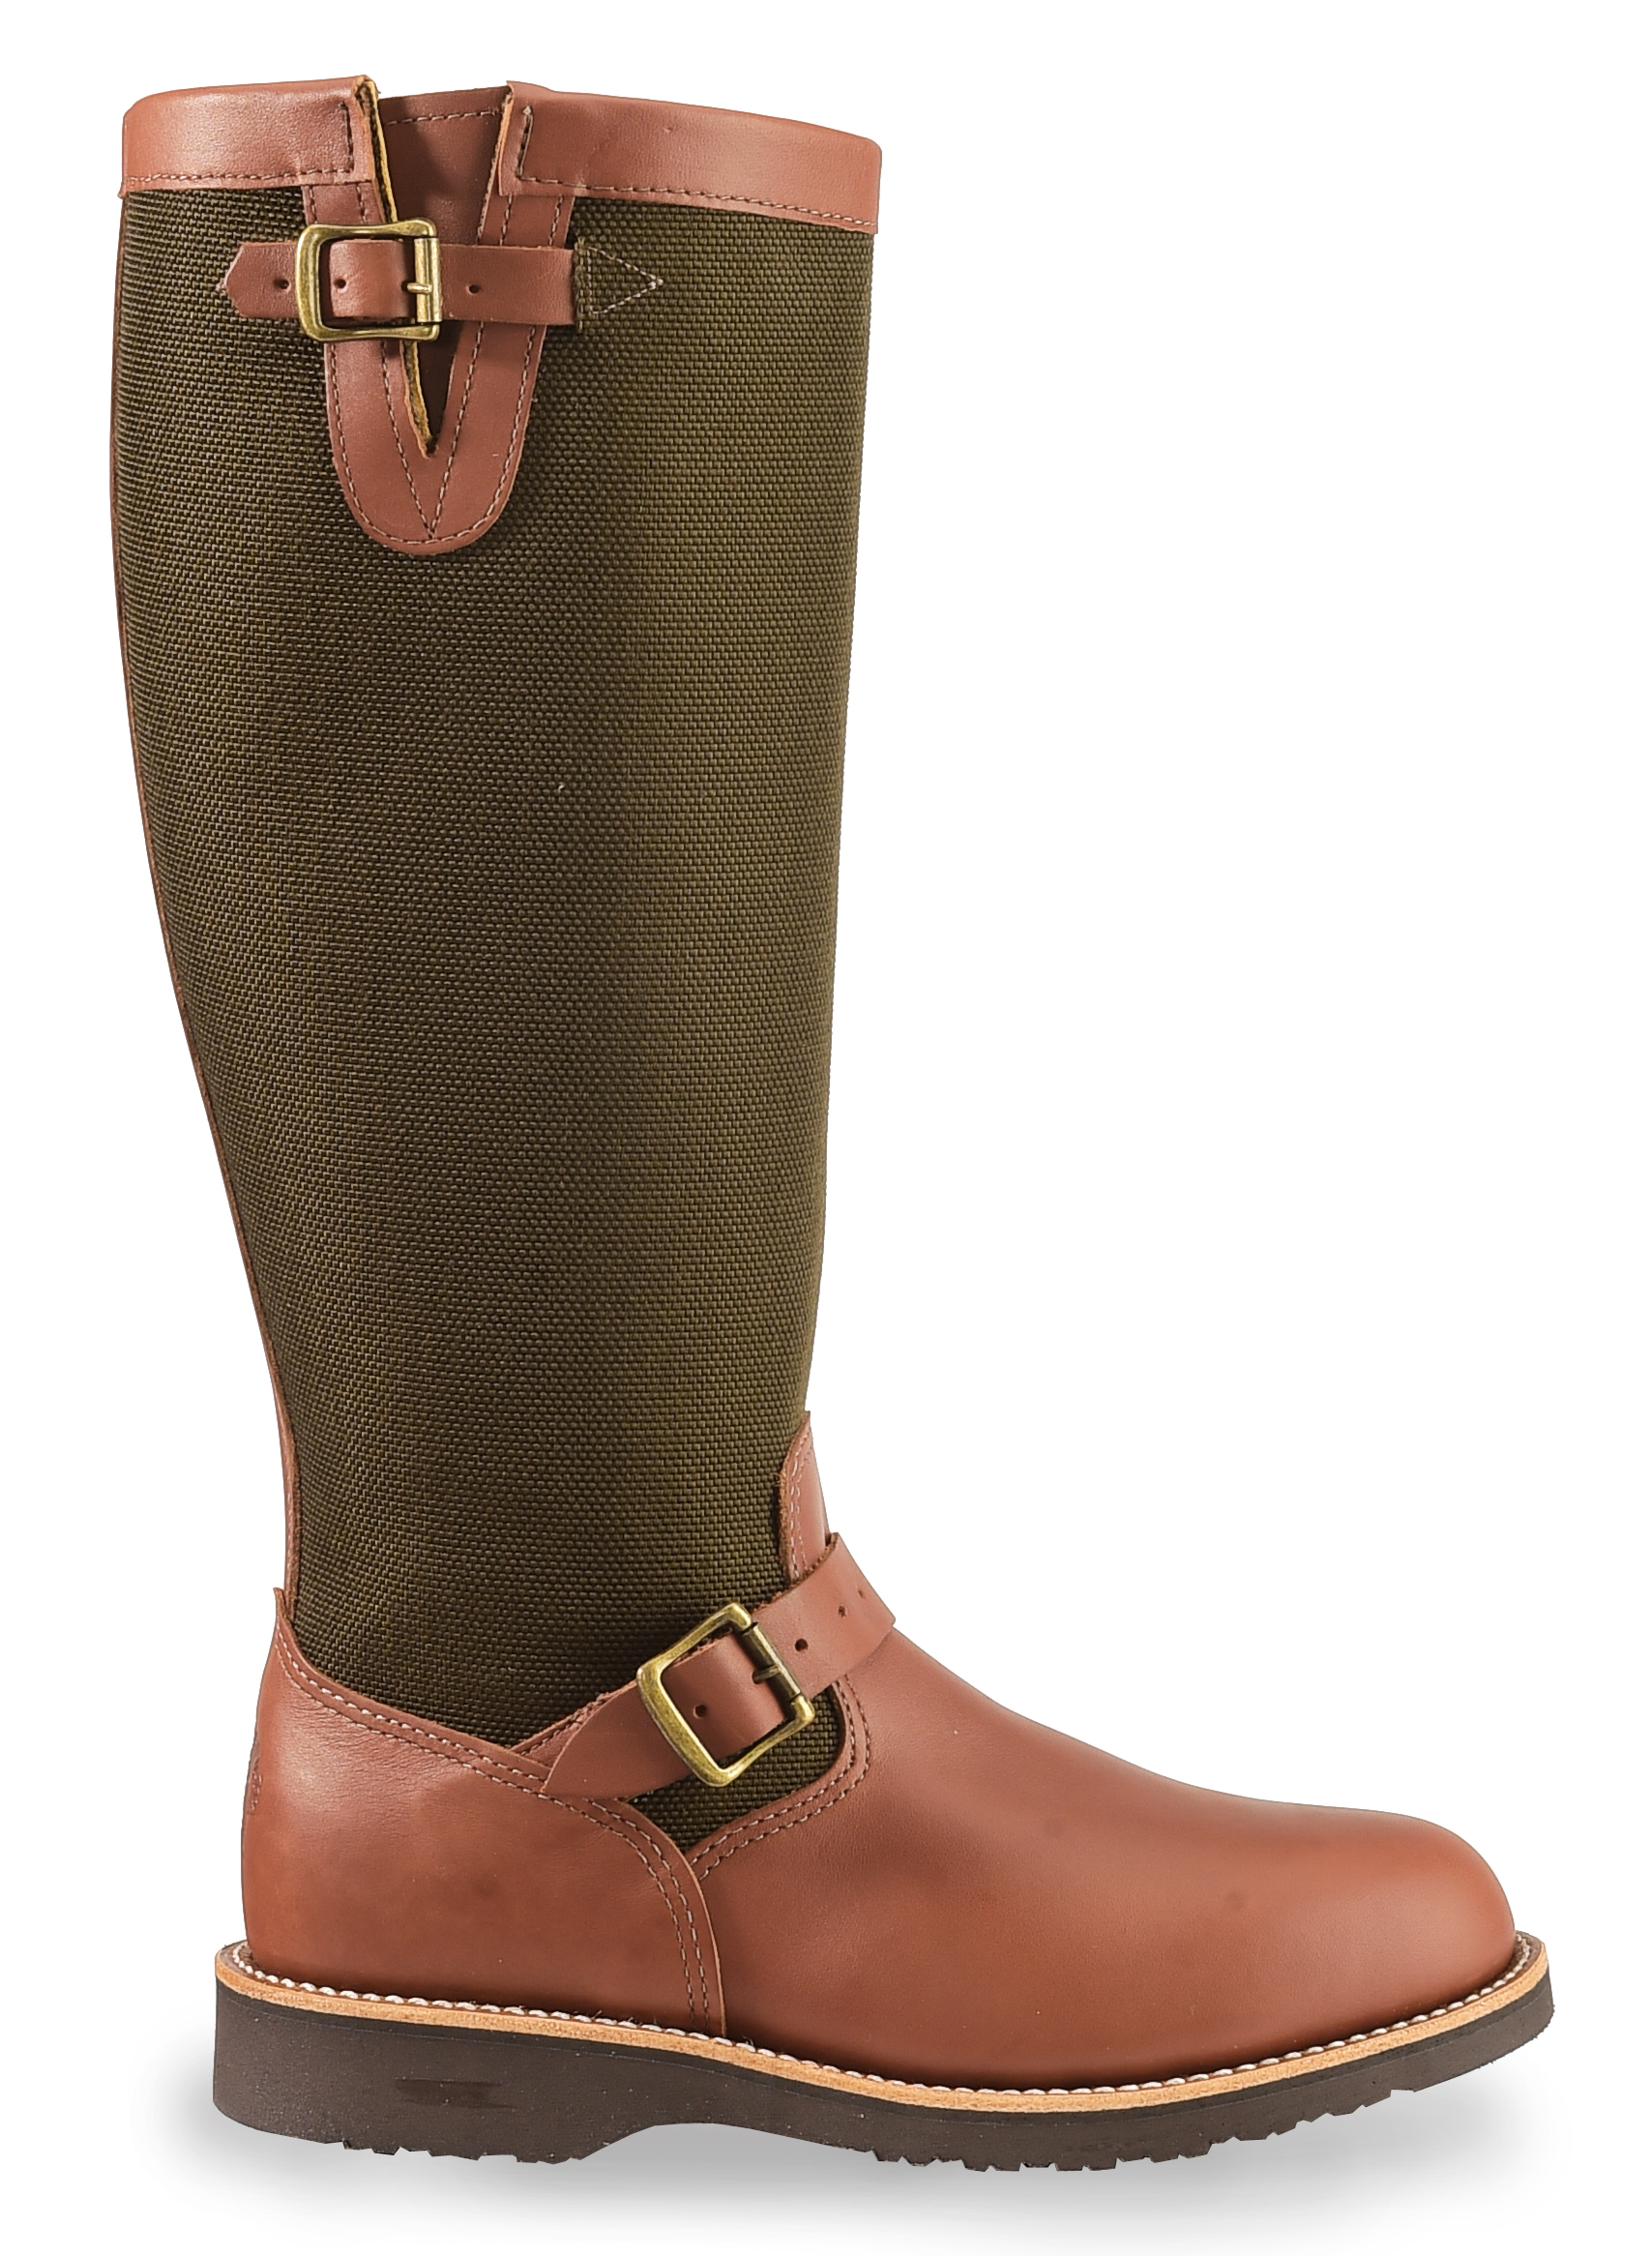 Chippewa Snake Proof Pull On Work Boots Sheplers